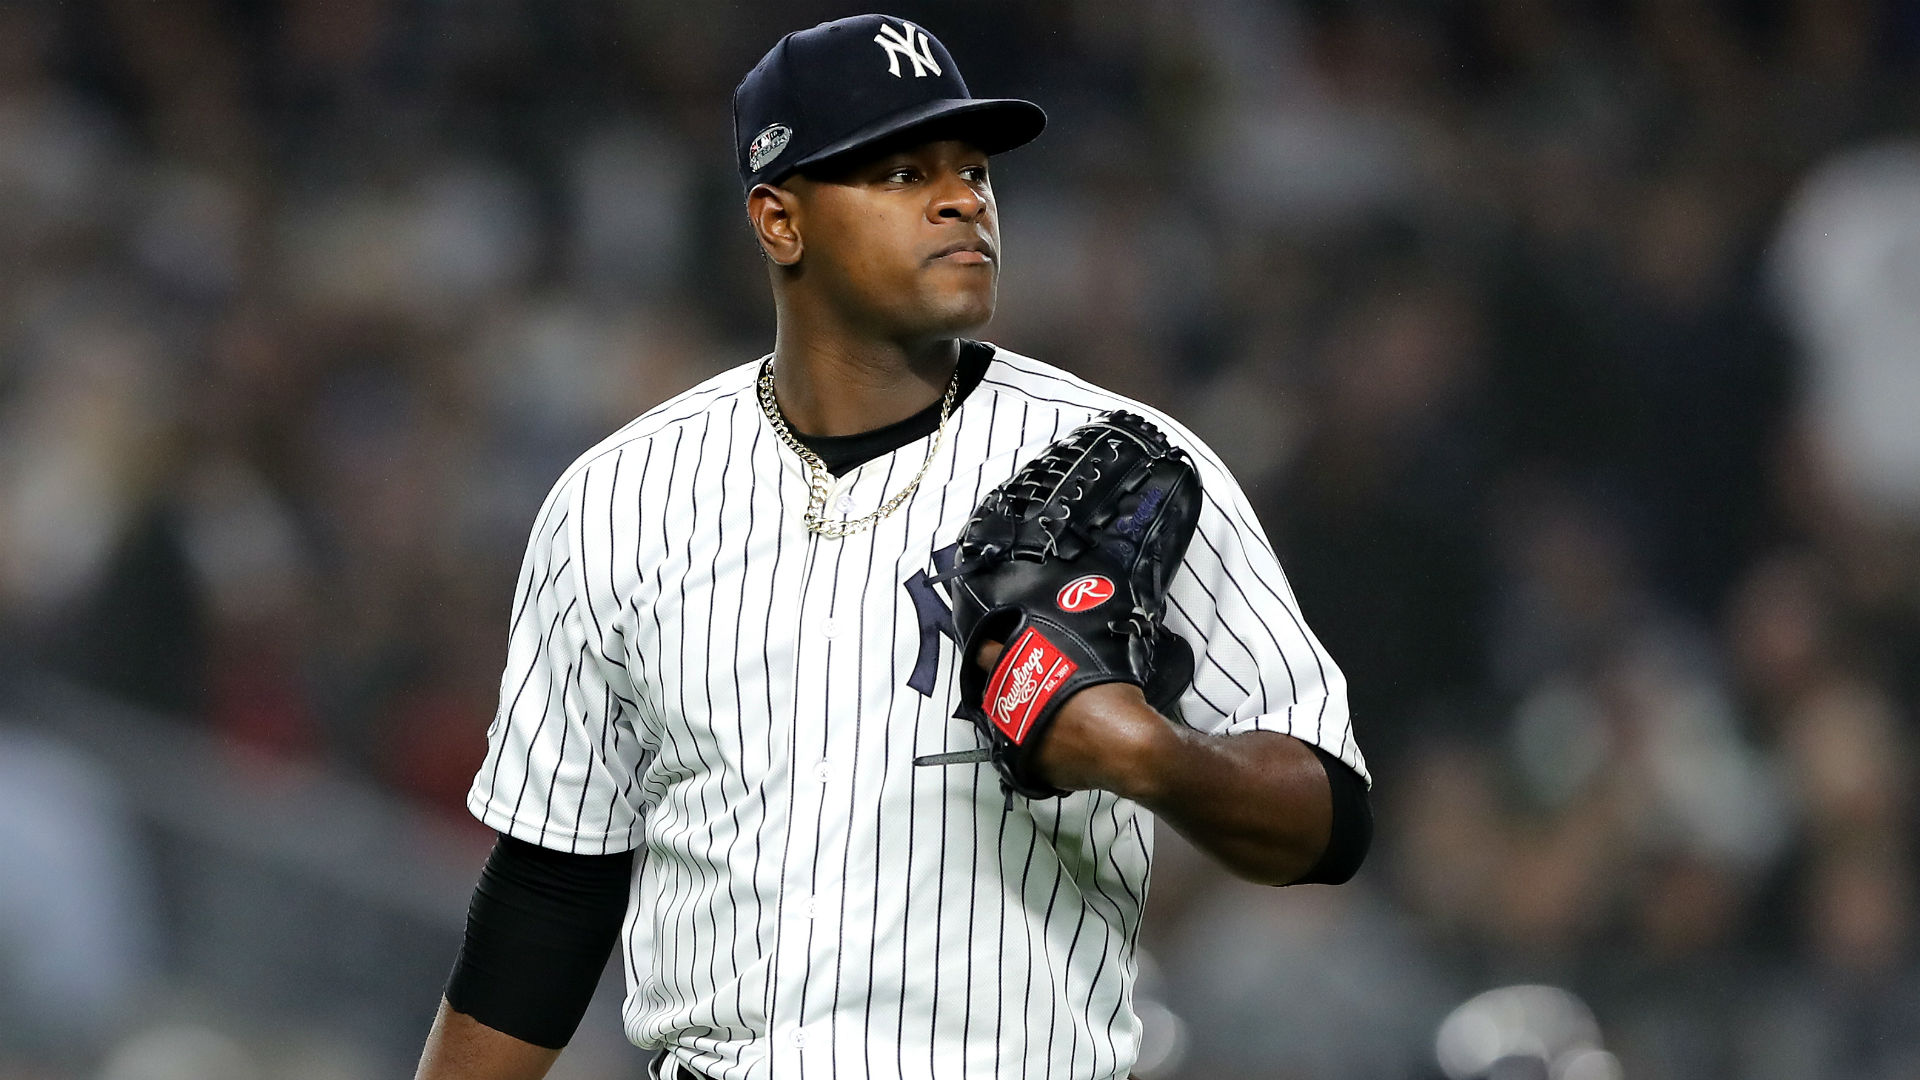 Severino, sidelined all season with shoulder and lat problems, is expected to make his first start Tuesday against the Angels.